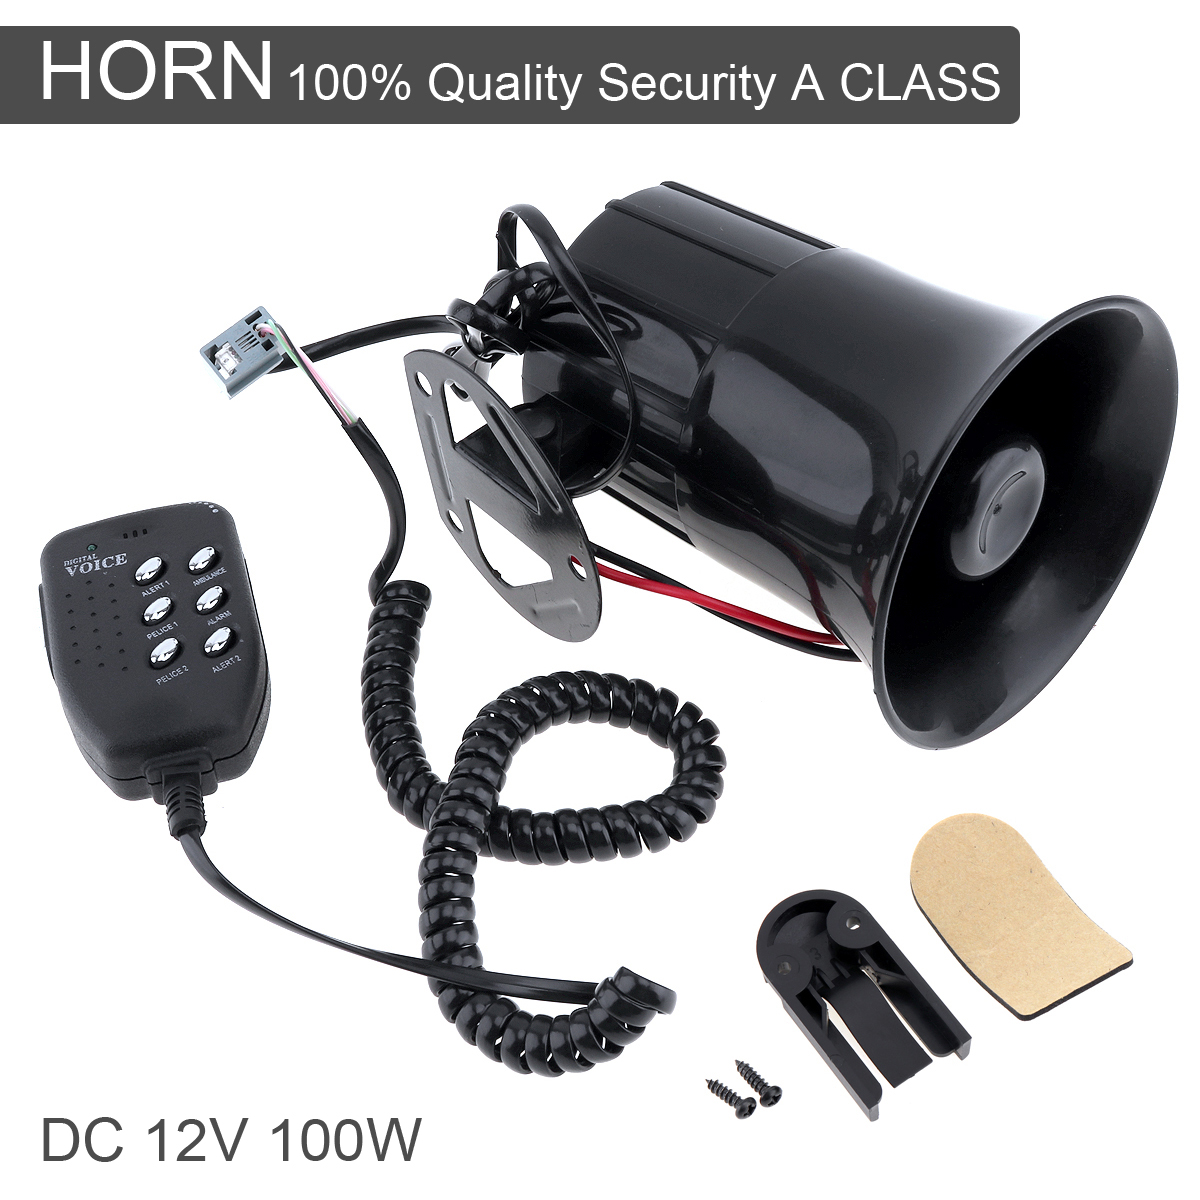 6 Sound 100W Tone Loud Horn Motorcycle Auto Car Vehicle Truck Speaker Warning Alarm Siren Police Fire Ambulance Horn Loudspeaker